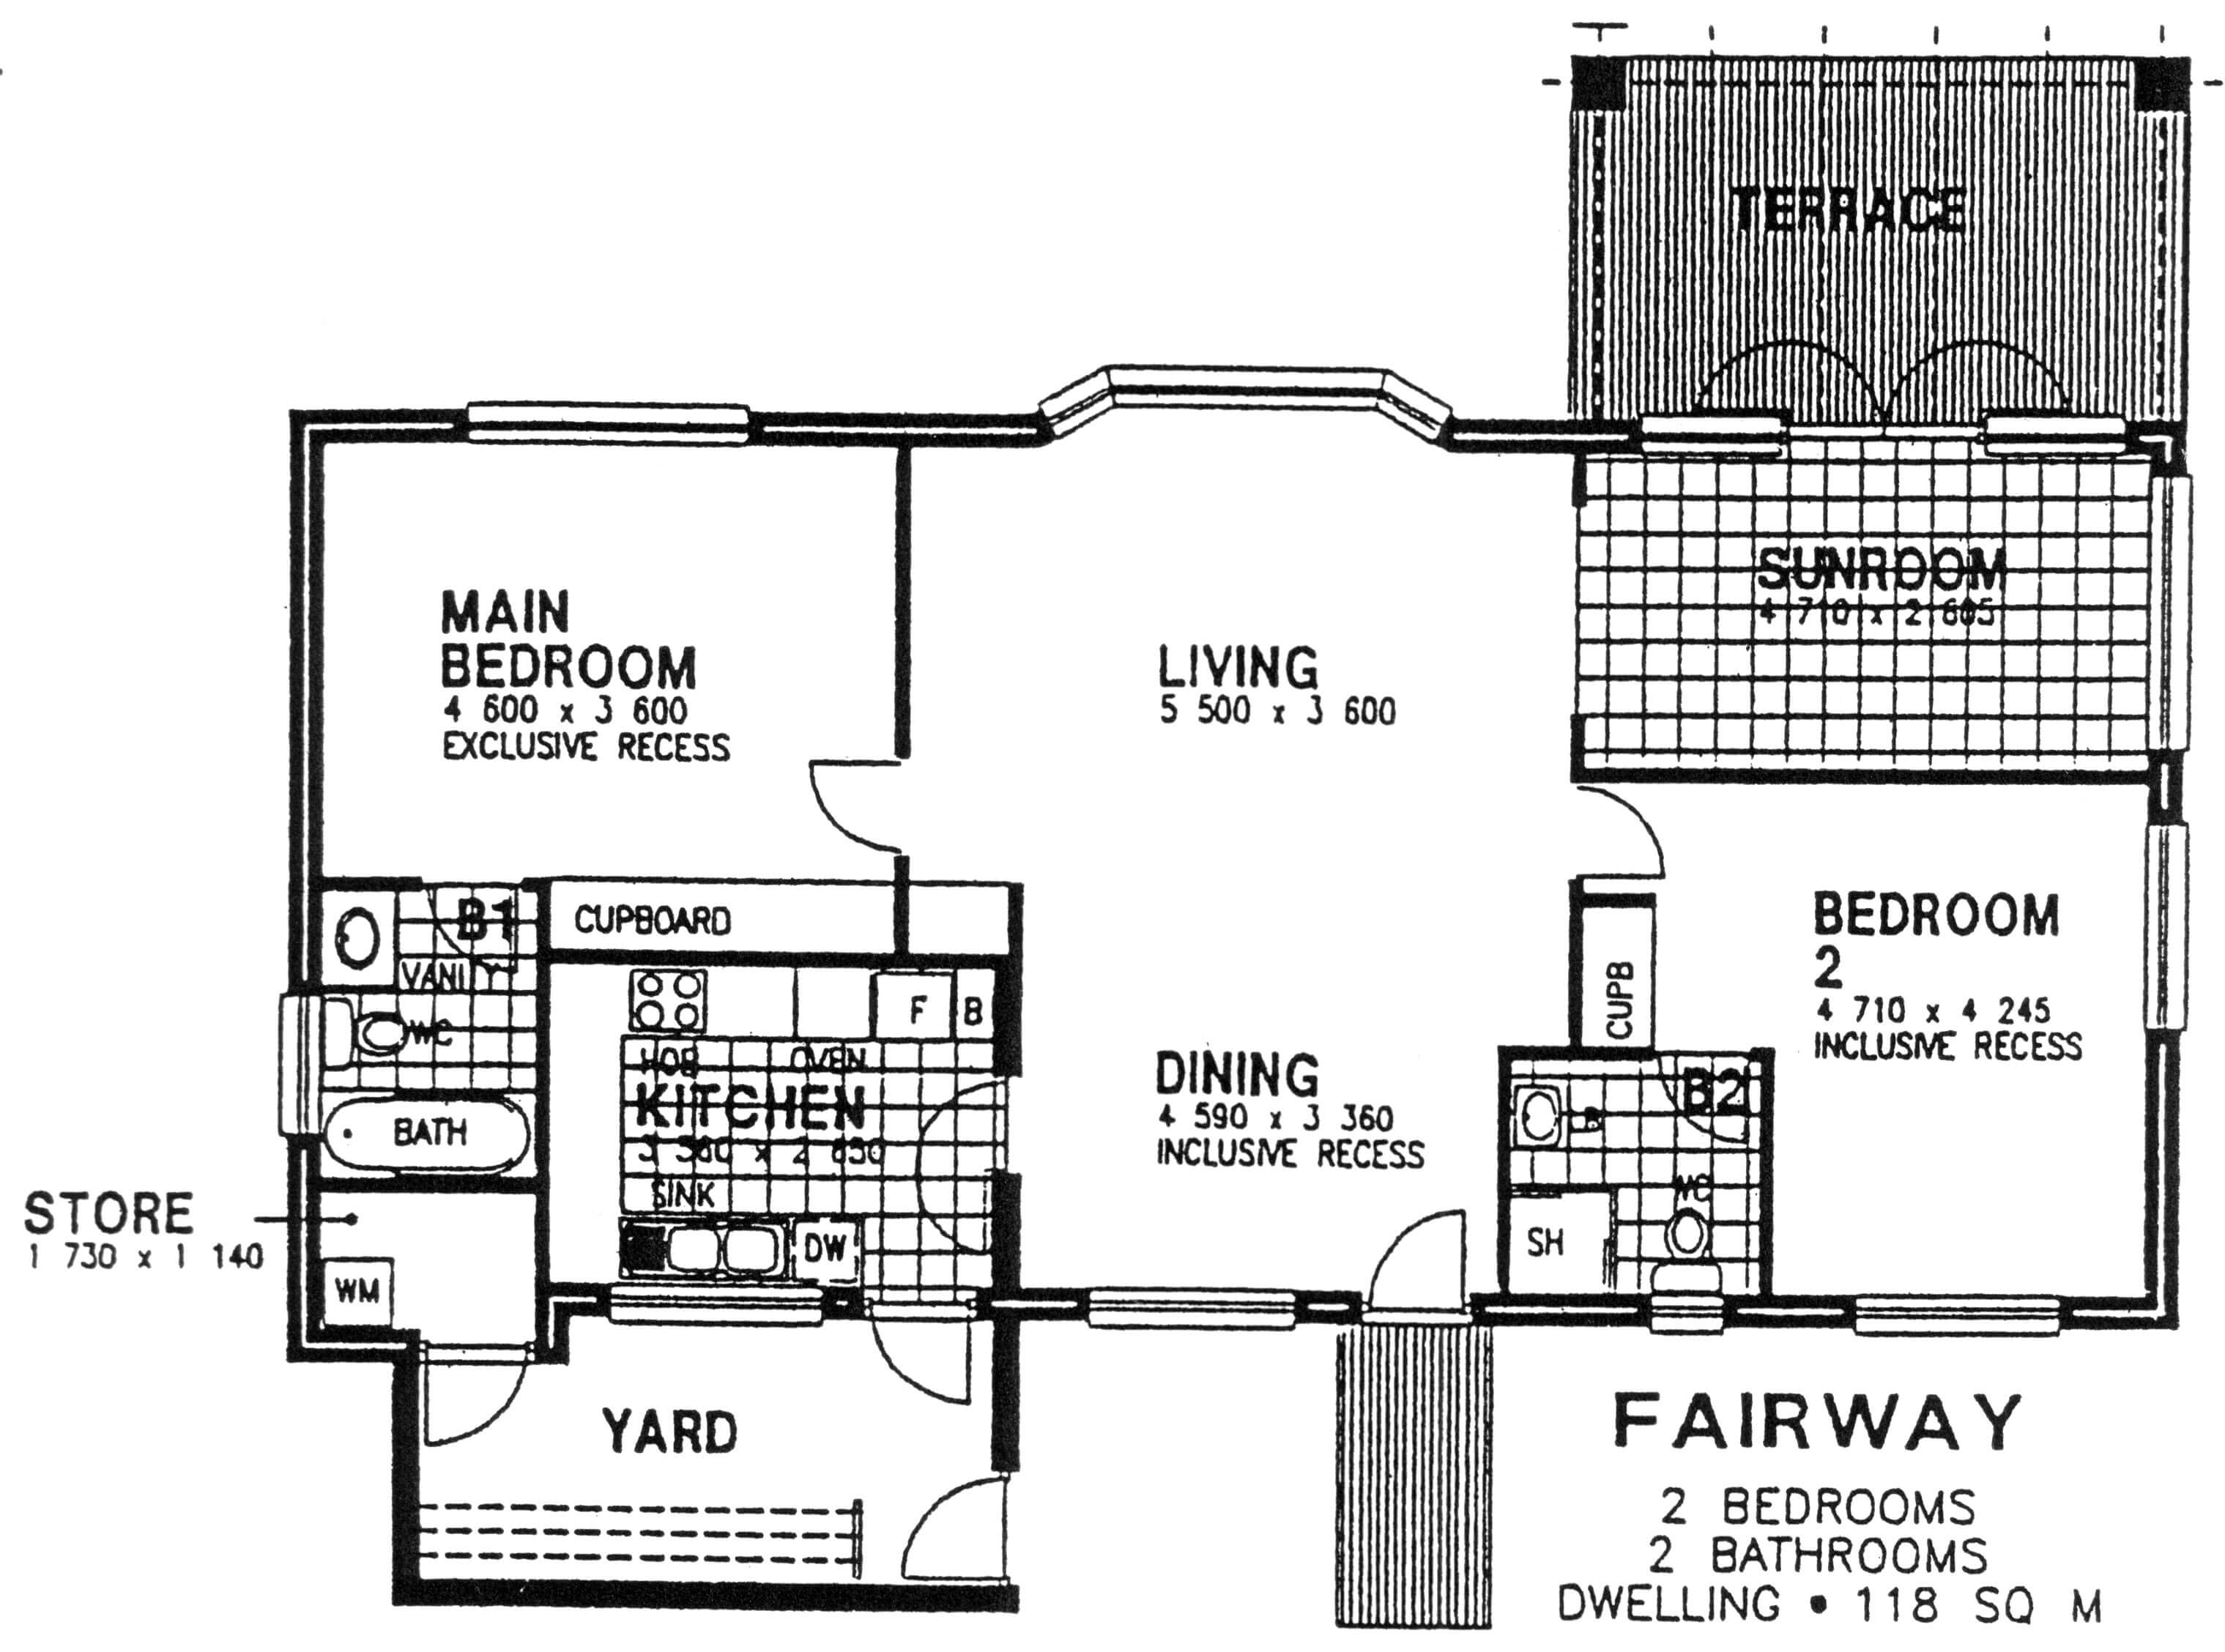 Floor Plan - Fairway Floor Plan